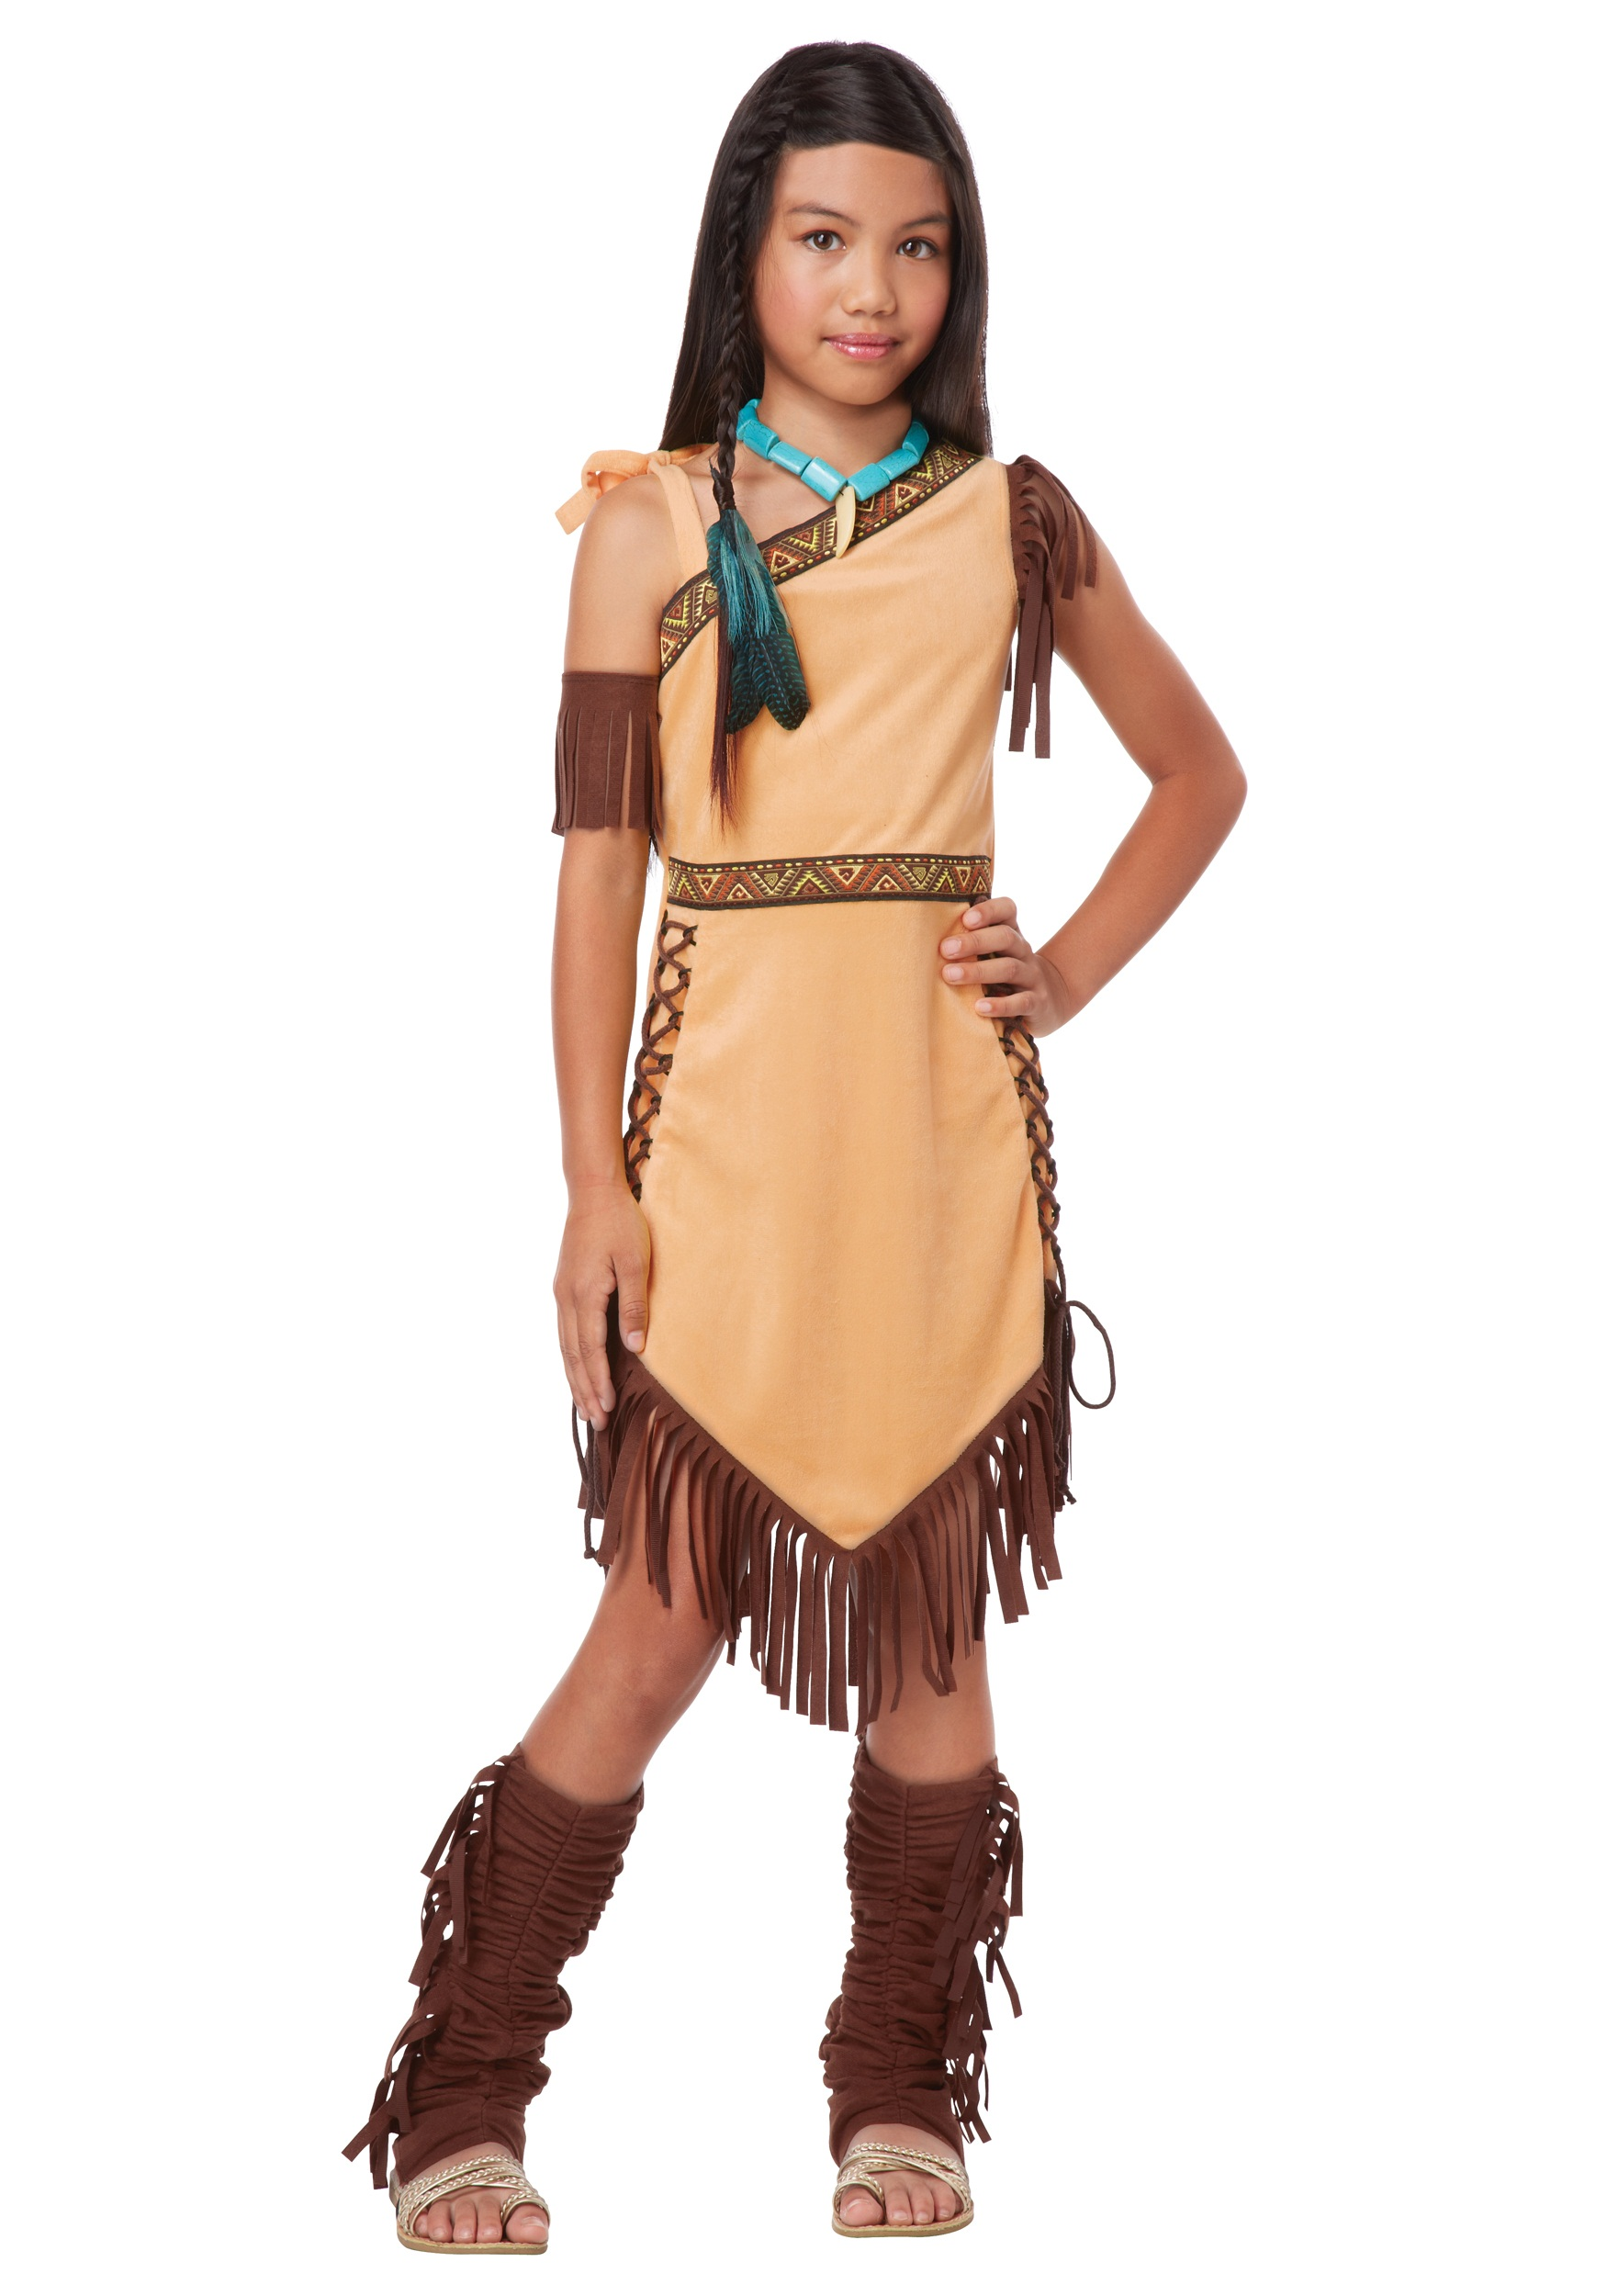 Native American Princess Girl Costume  sc 1 st  Halloween Costumes & Native American Princess Girl Costume - Halloween Costumes